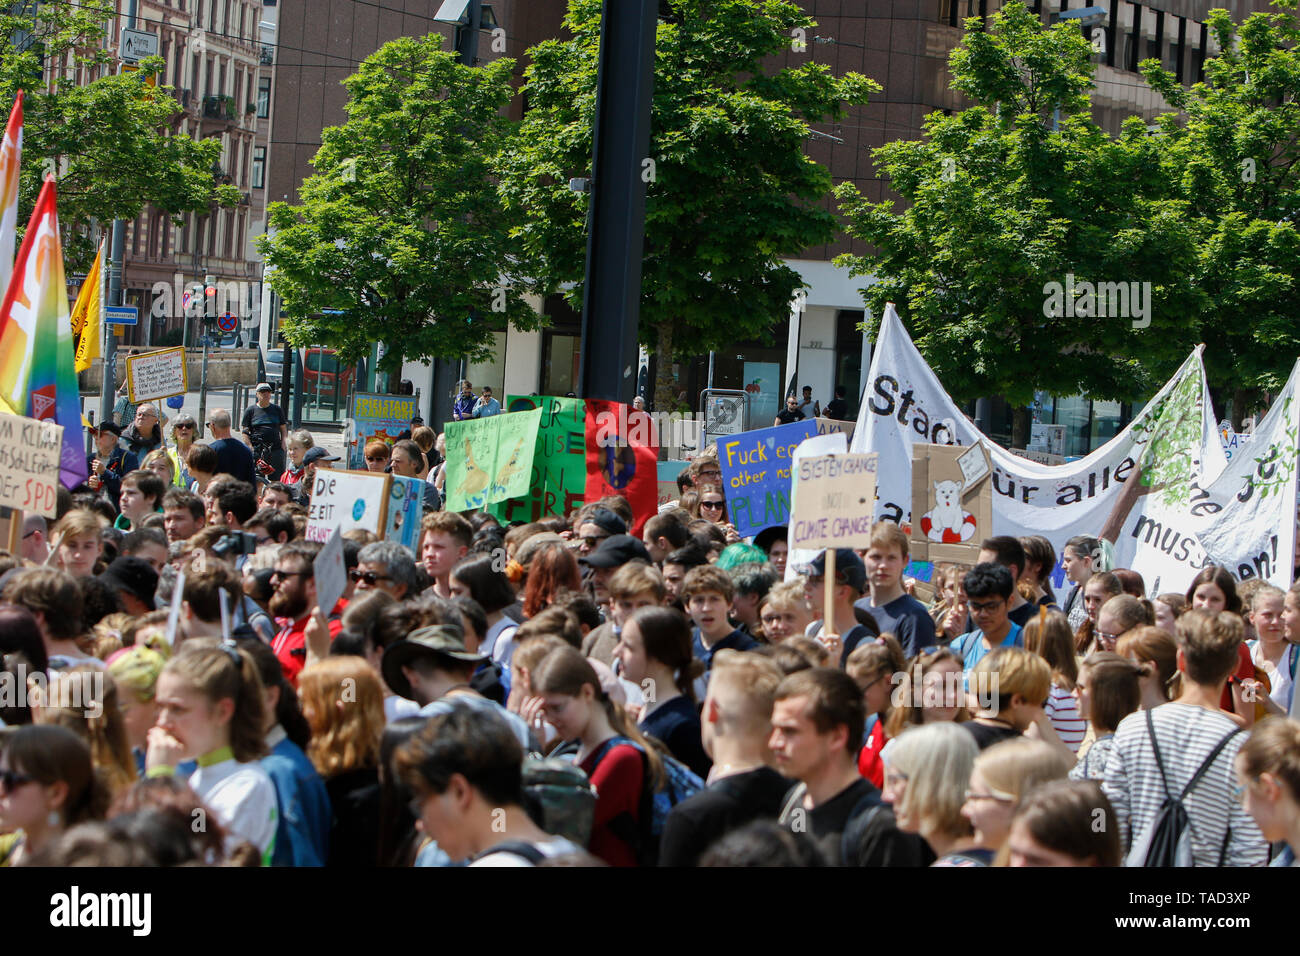 Frankfurt, Germany. 24th May 2019. The young people assembled with self-made signs and banners for the opening rally. Around 4,500 young people marched through Frankfurt to the European Central Bank, to protest against the climate change and for the introduction of measurements against it. The protest took place as part of an Europe wide climate strike, two days ahead of the 2019 European elections. - Stock Image